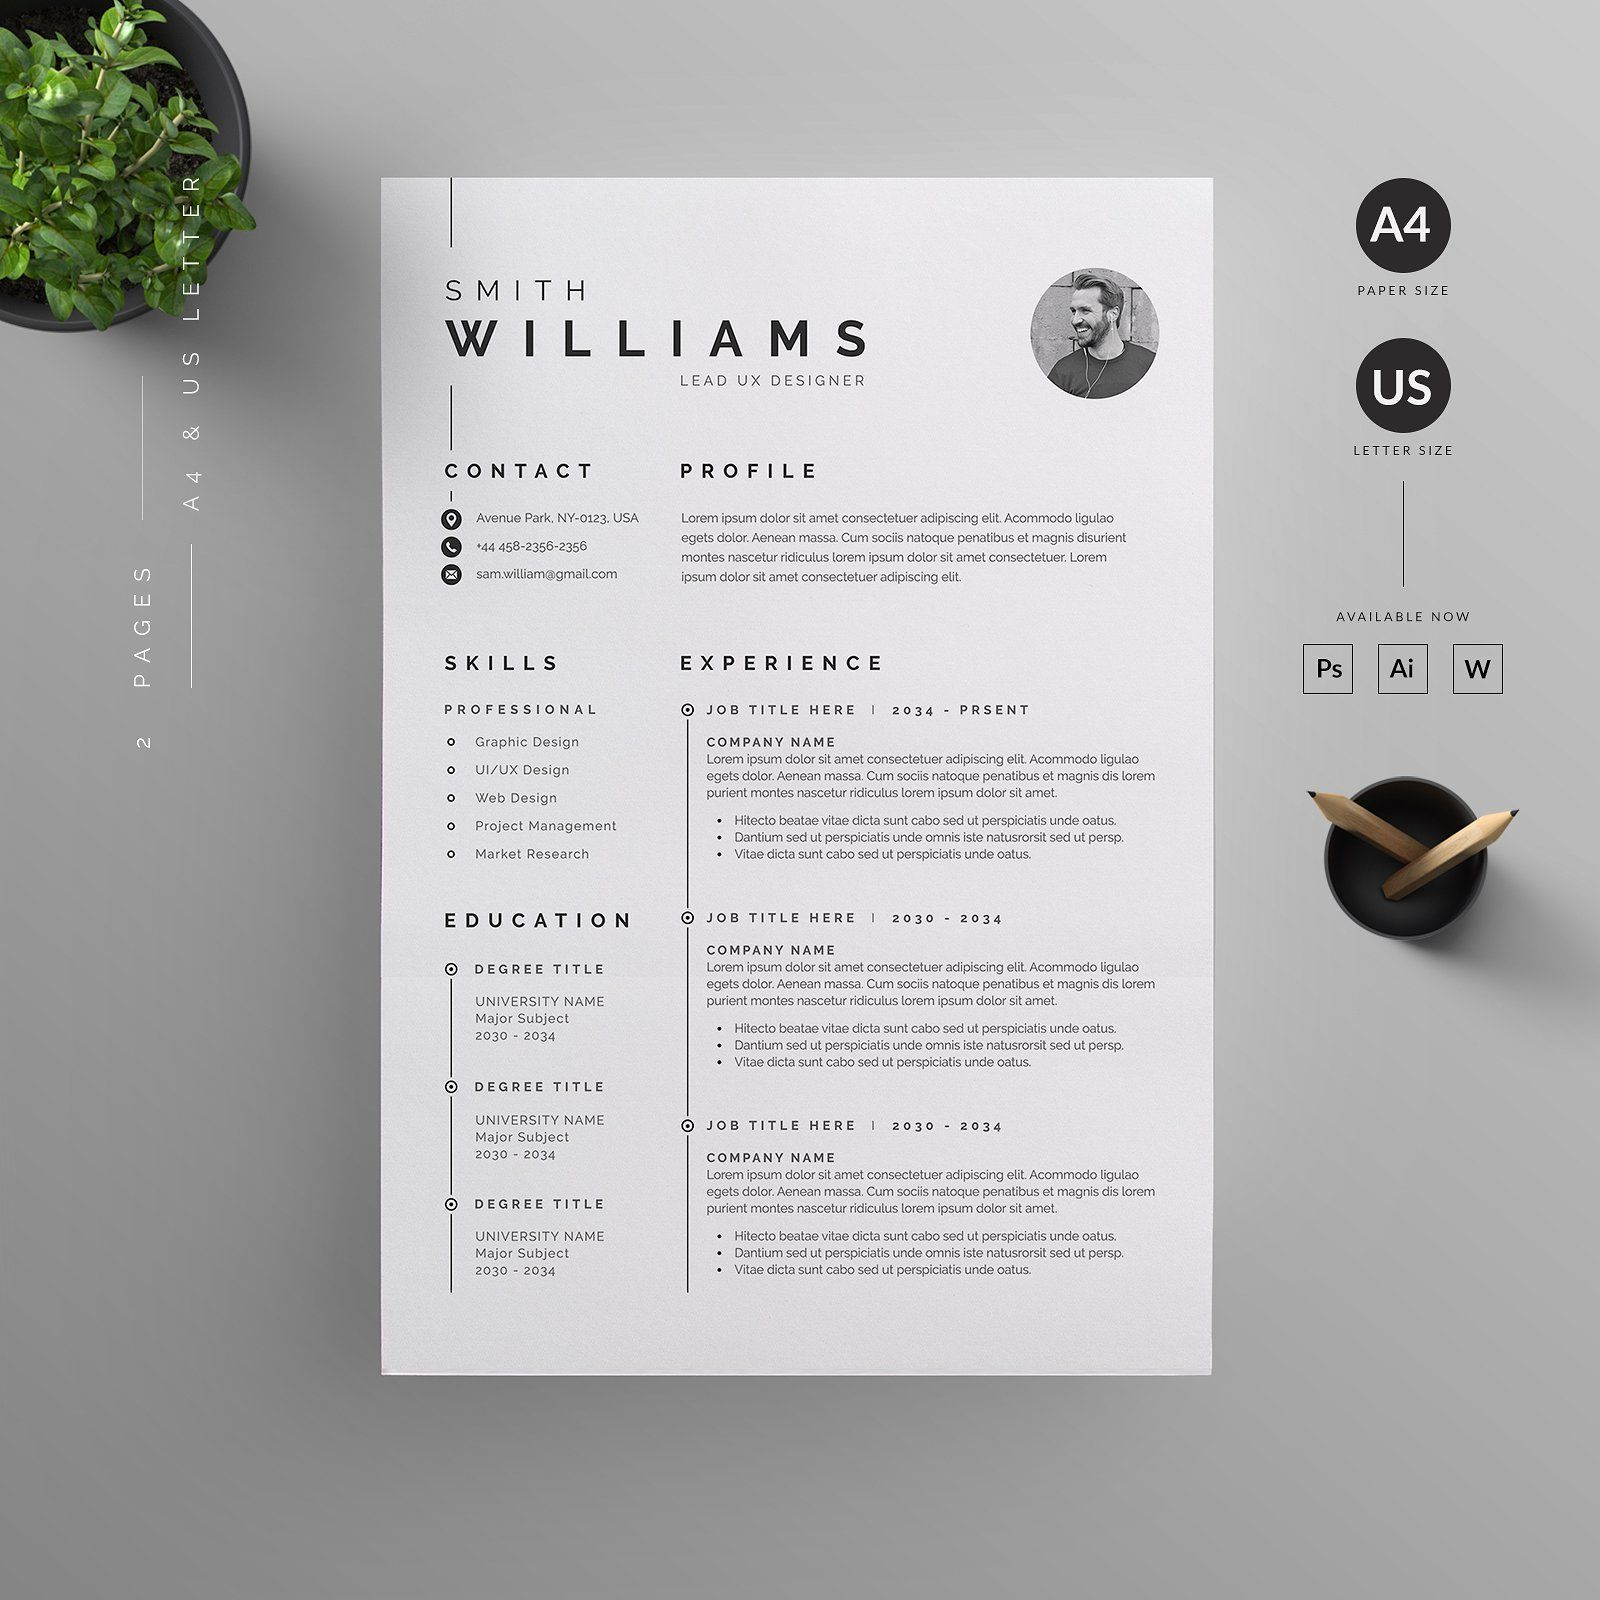 Resume CV Template Clean Modern and Professional Resume and Letterhead design Fully customizable easy to use and replace color & text Give an employer a great first impression and help you land your dream job resume branding job application cv portfolio minimal